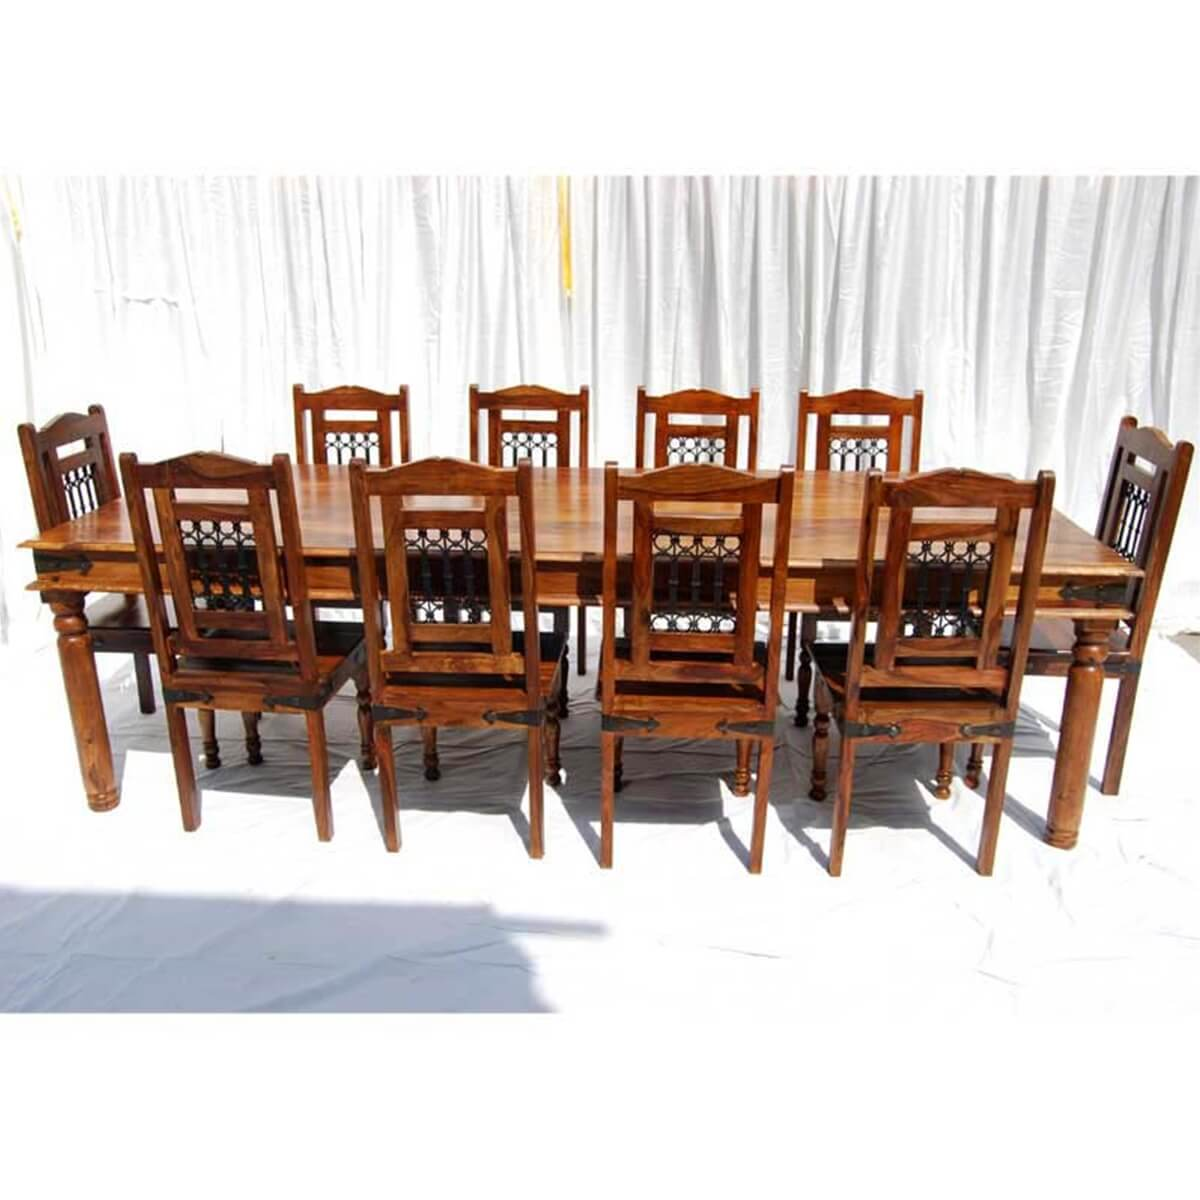 Solid Wood Large Rustic Dining Room Table Chair Buffet Furniture Set